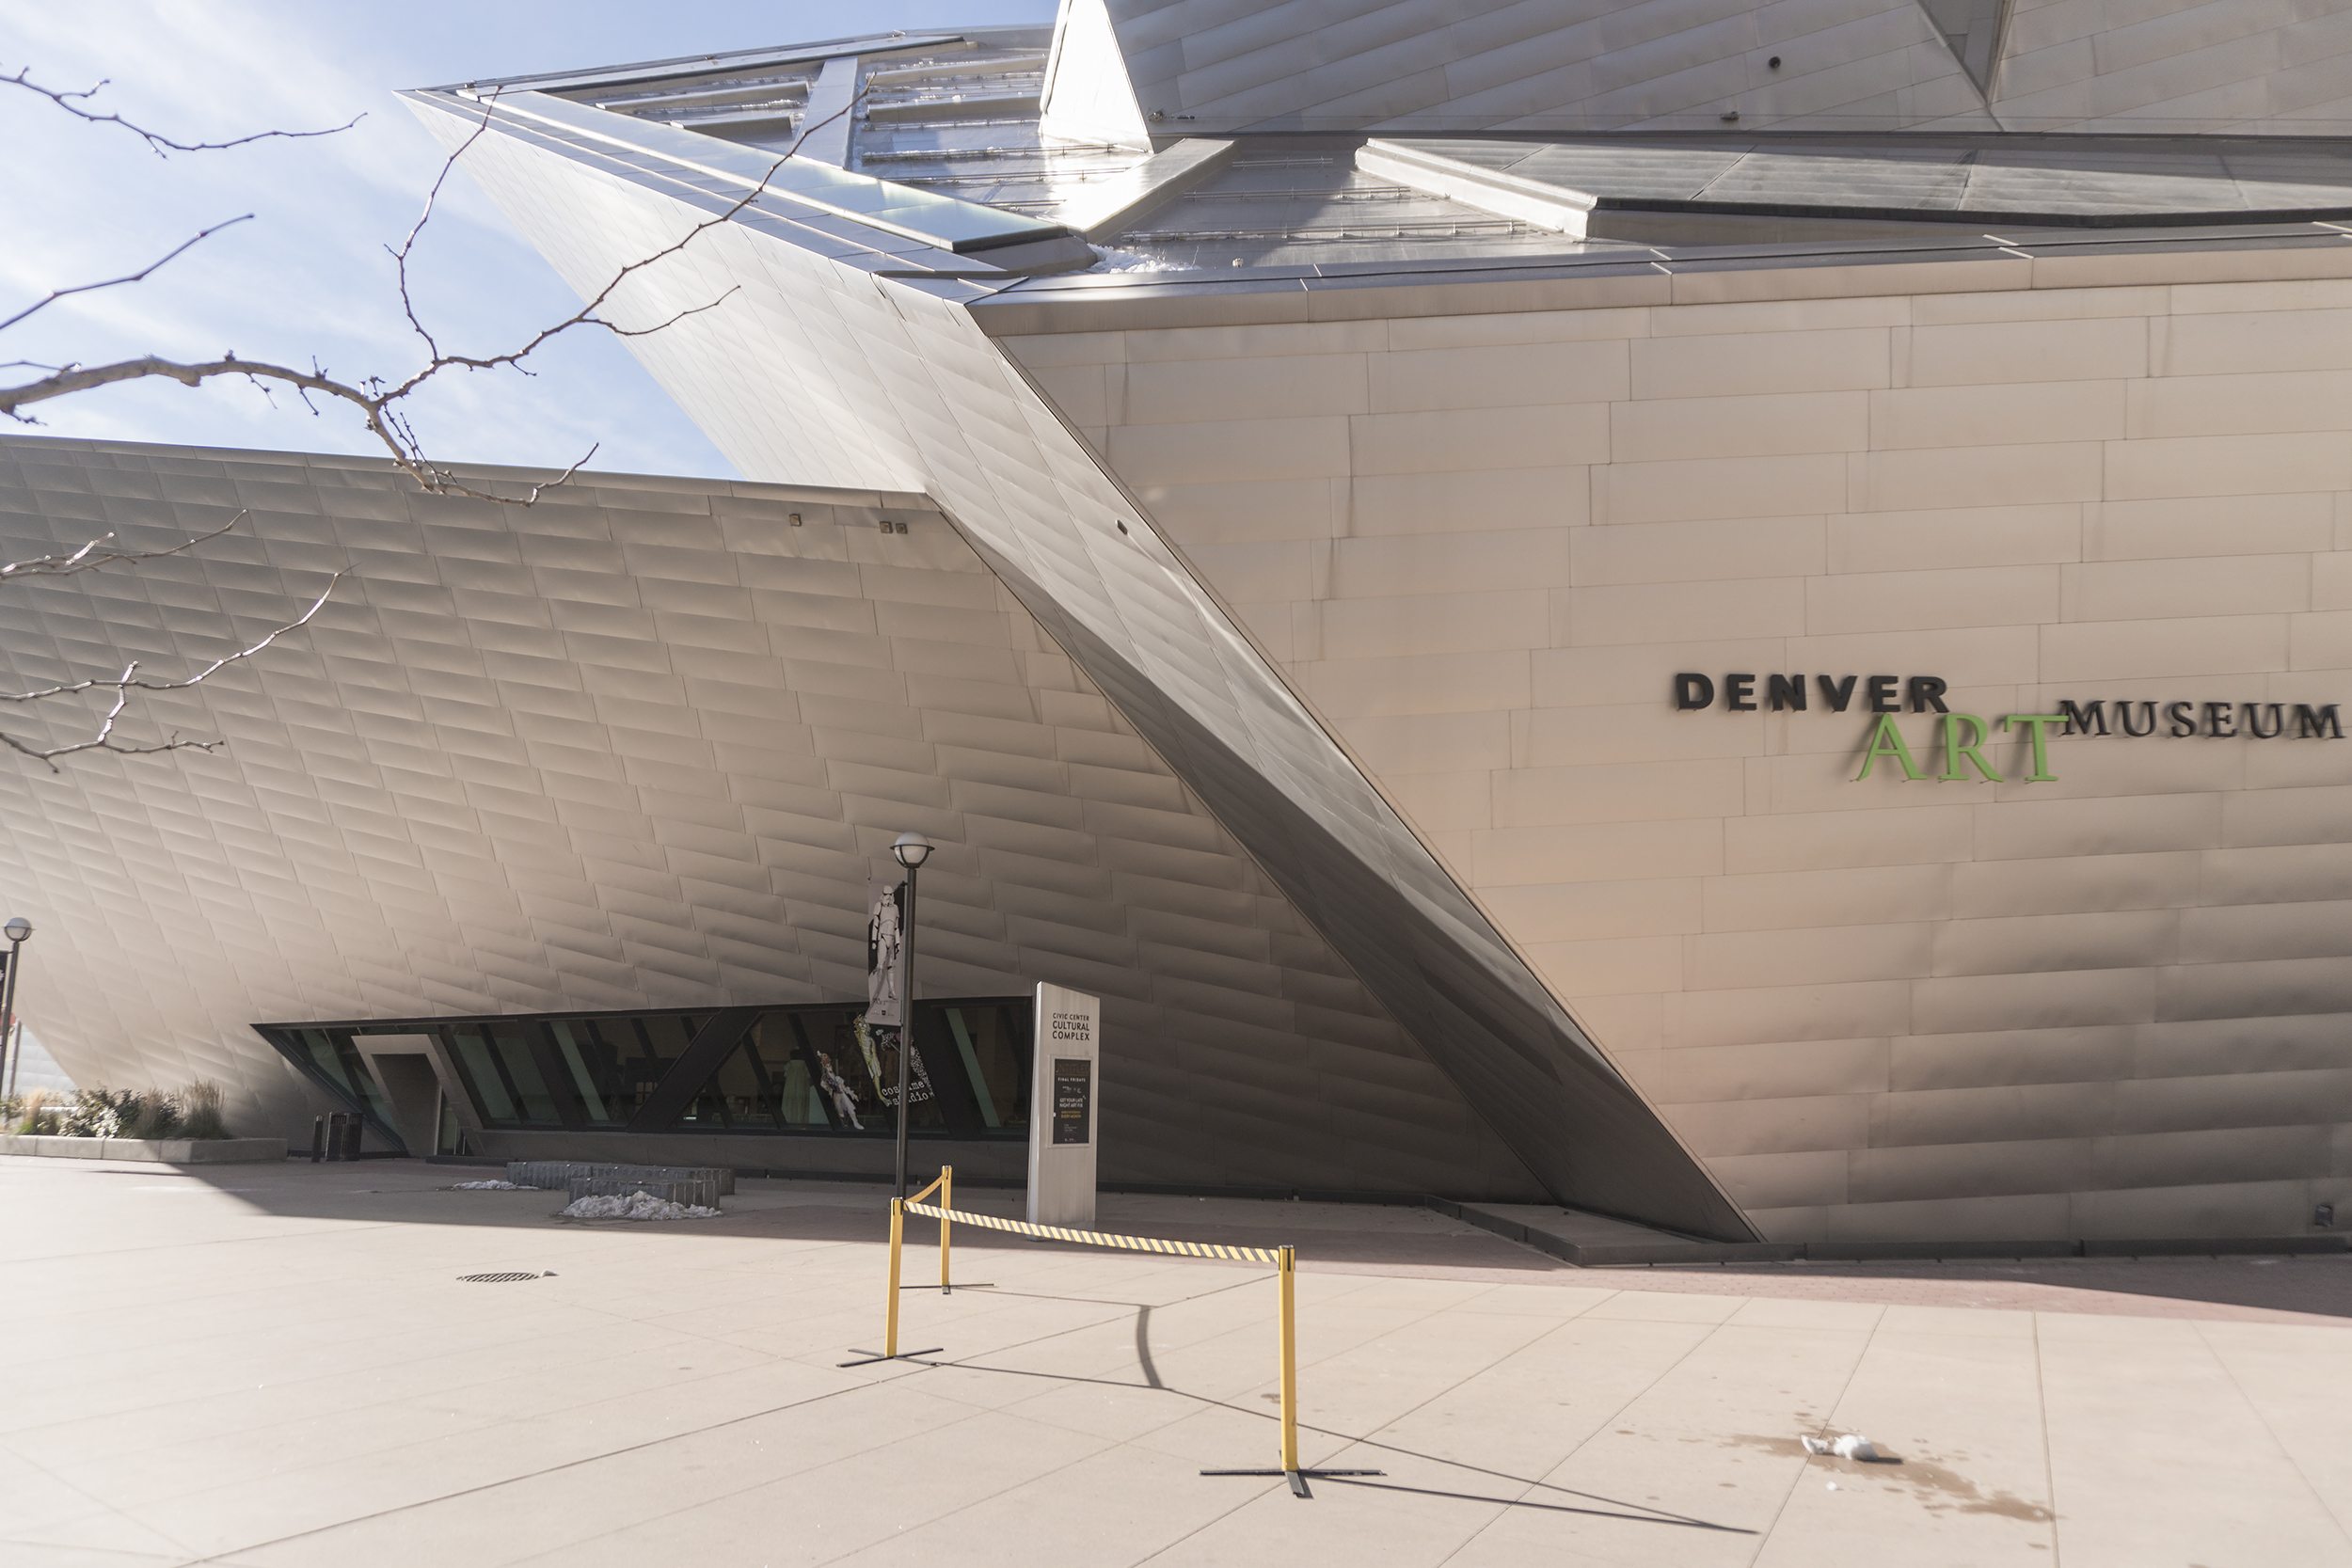 BARRICADES ERECTED TO PROTECT PEDESTRIANS FROM FALLING SHARDS OF ICE, DENVER ART MUSEUM. ARCHITECT: DANIEL LIBESKIND